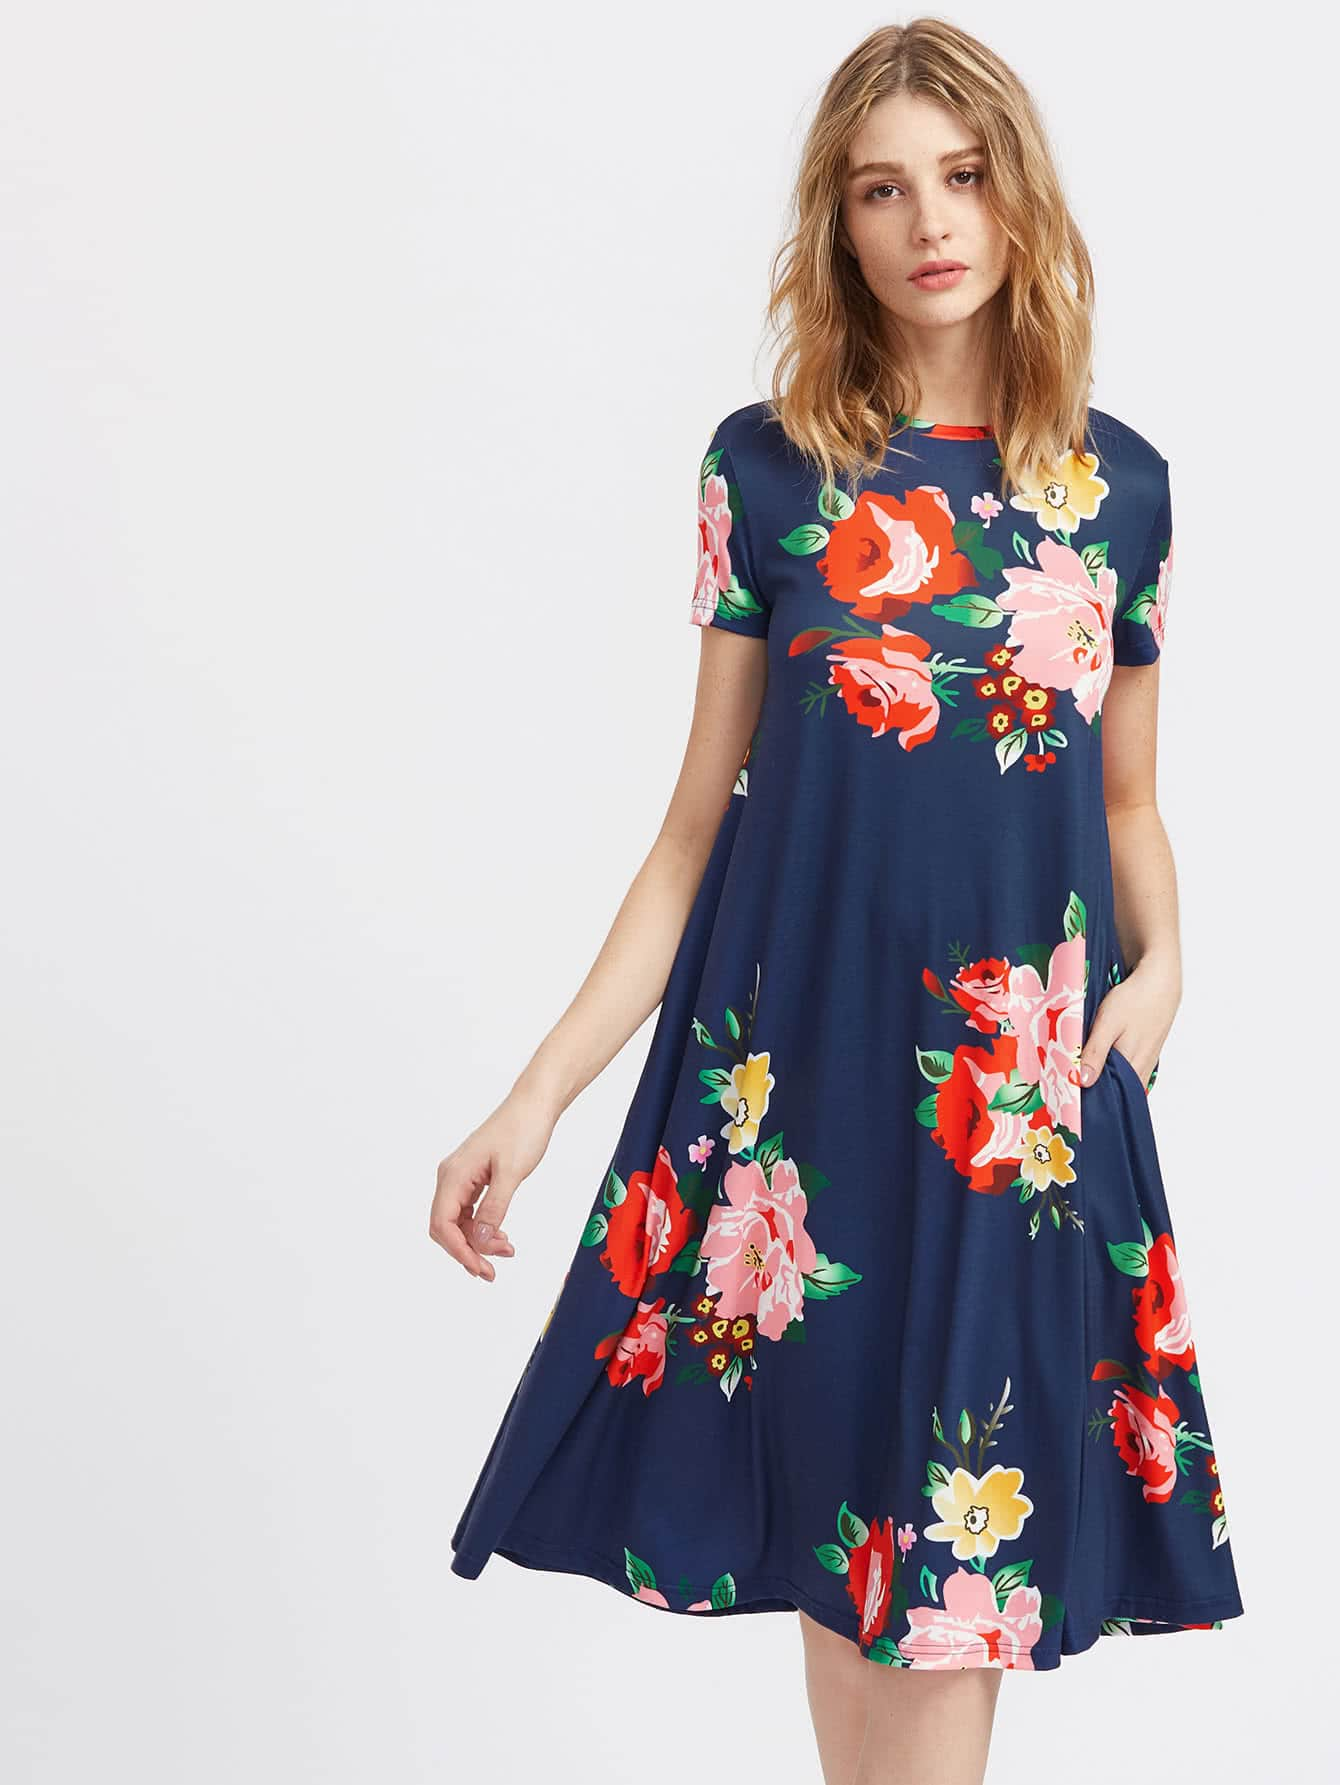 Flower Print Side Pocket Detail Swing Tee Dress pocket full length tee dress page 8